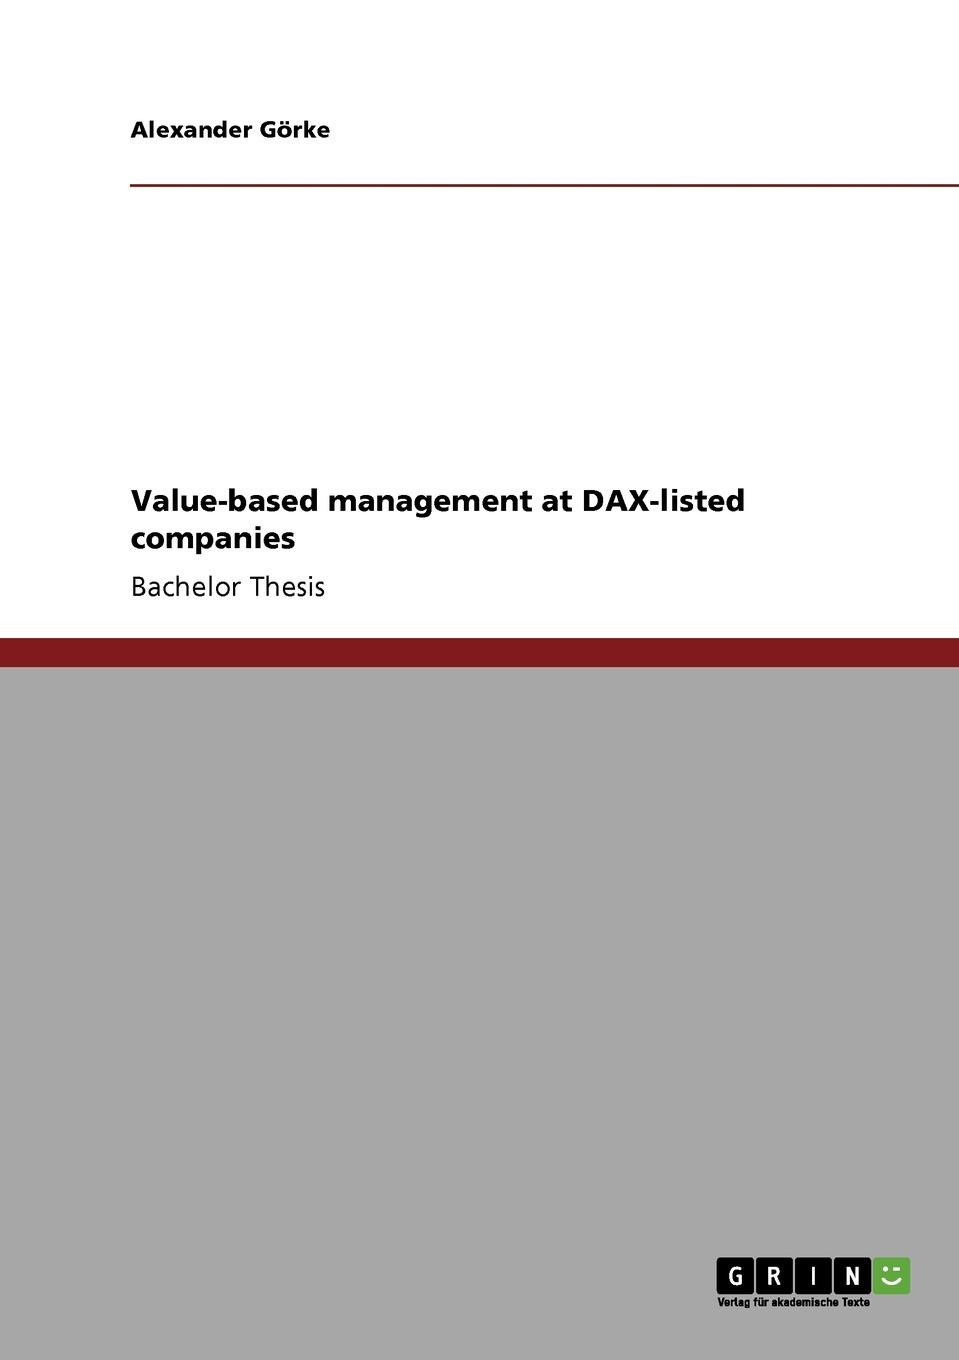 Alexander Görke Value-based management at DAX-listed companies marc goedhart valuation measuring and managing the value of companies